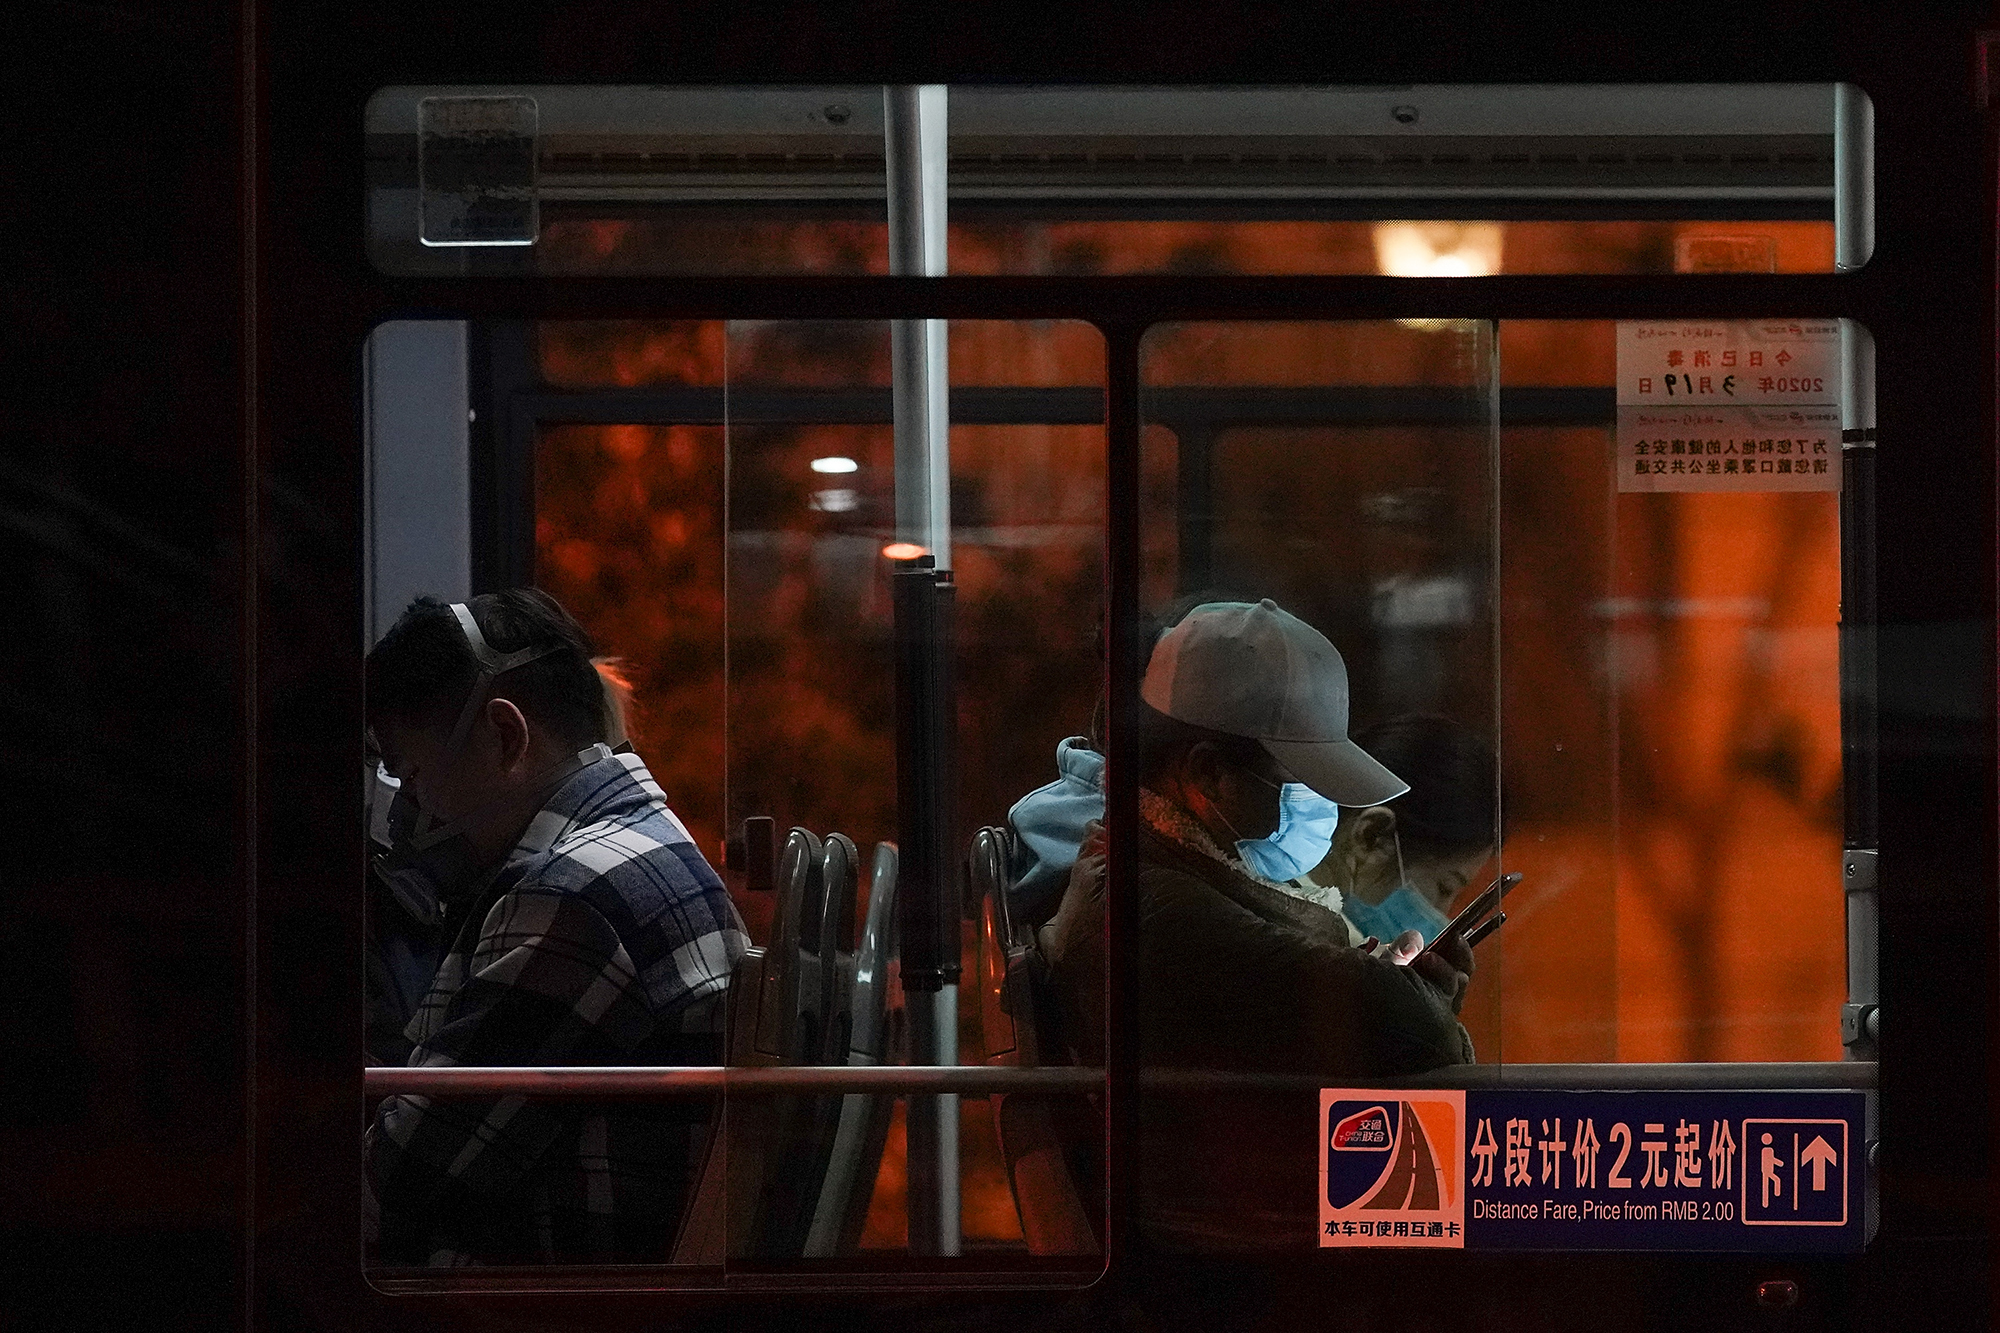 A Chinese man wears a protective mask as he rides the bus on March 19 in Beijing, China.